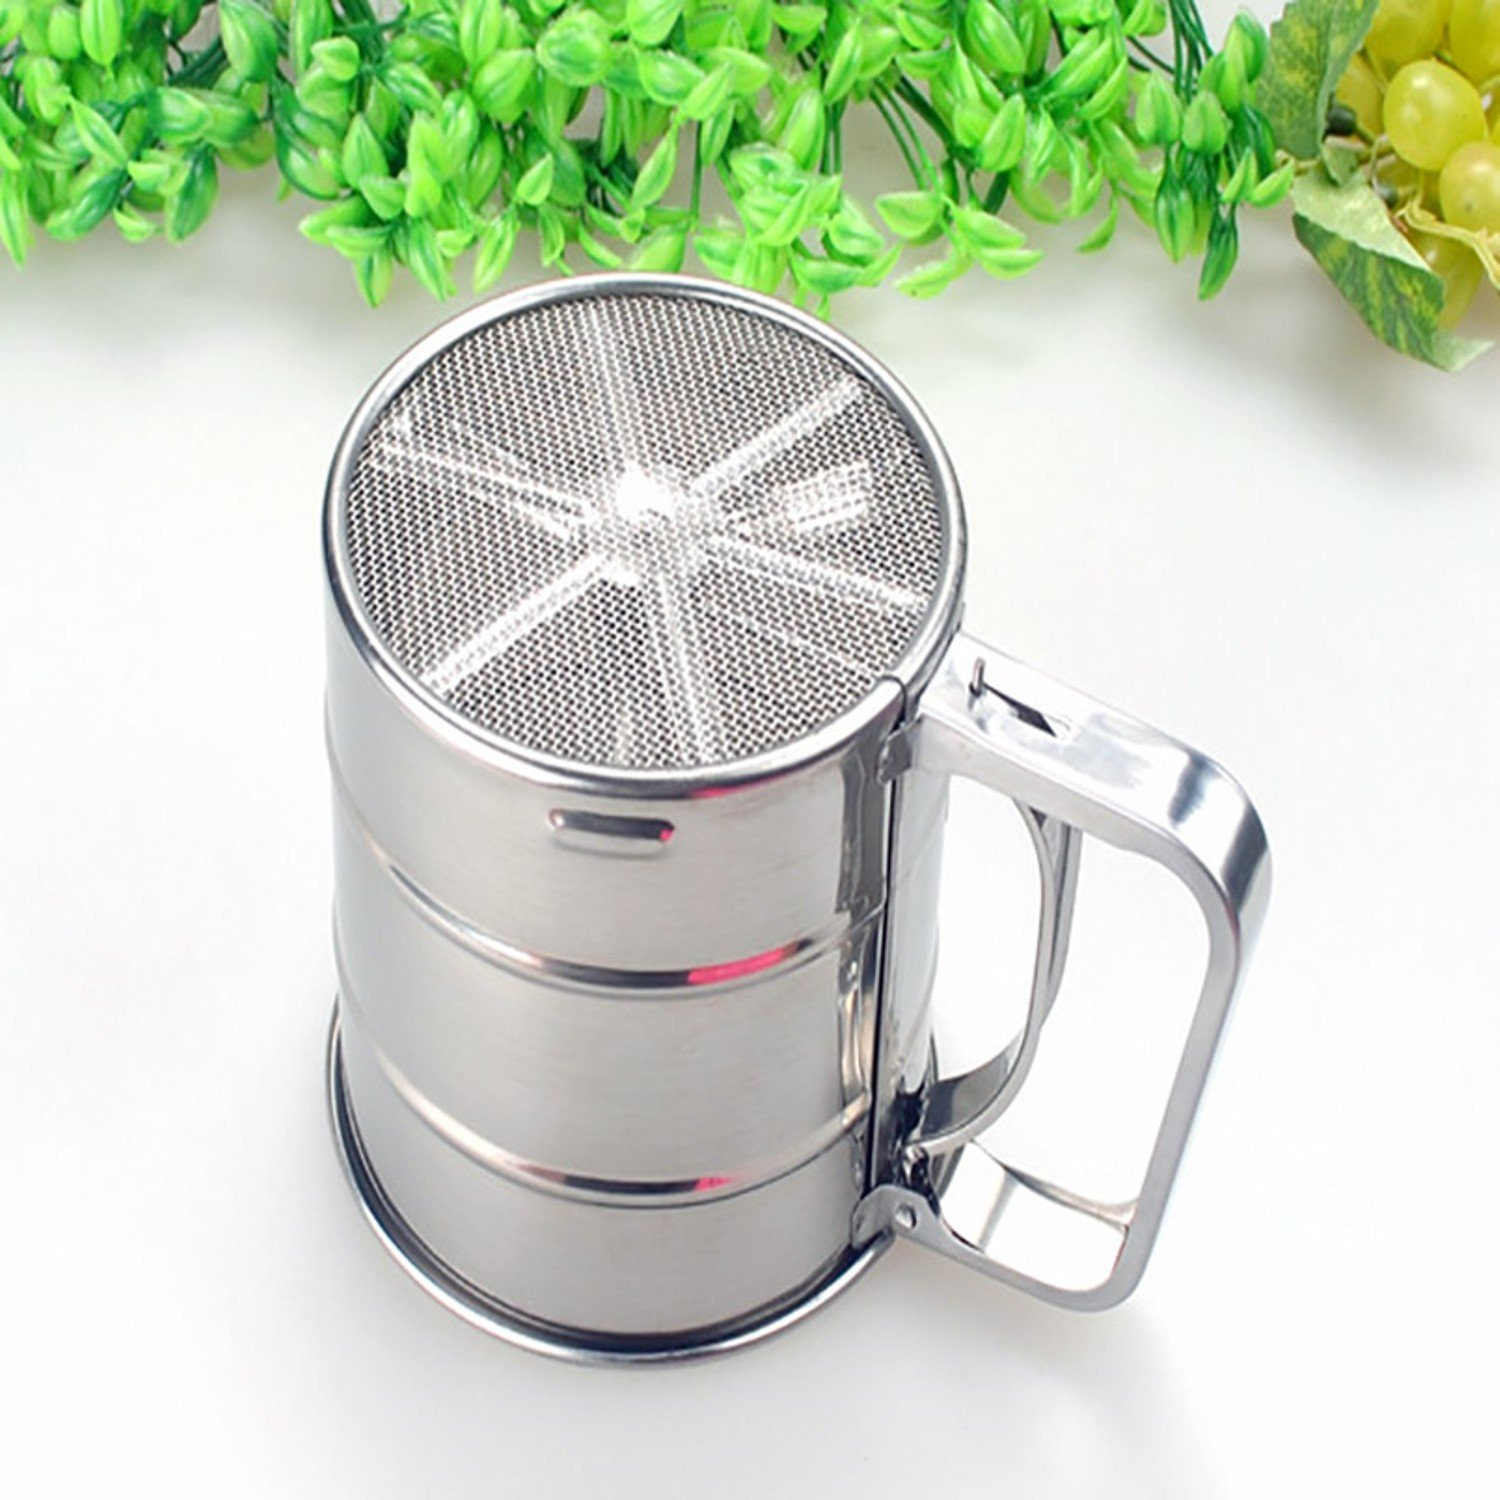 Convenient Flour Sifter Mug Shaped Large capacity Scale Show Dense Mesh Single-deck Coffee Sugar Powder Dusting Filtering Sieve Tool